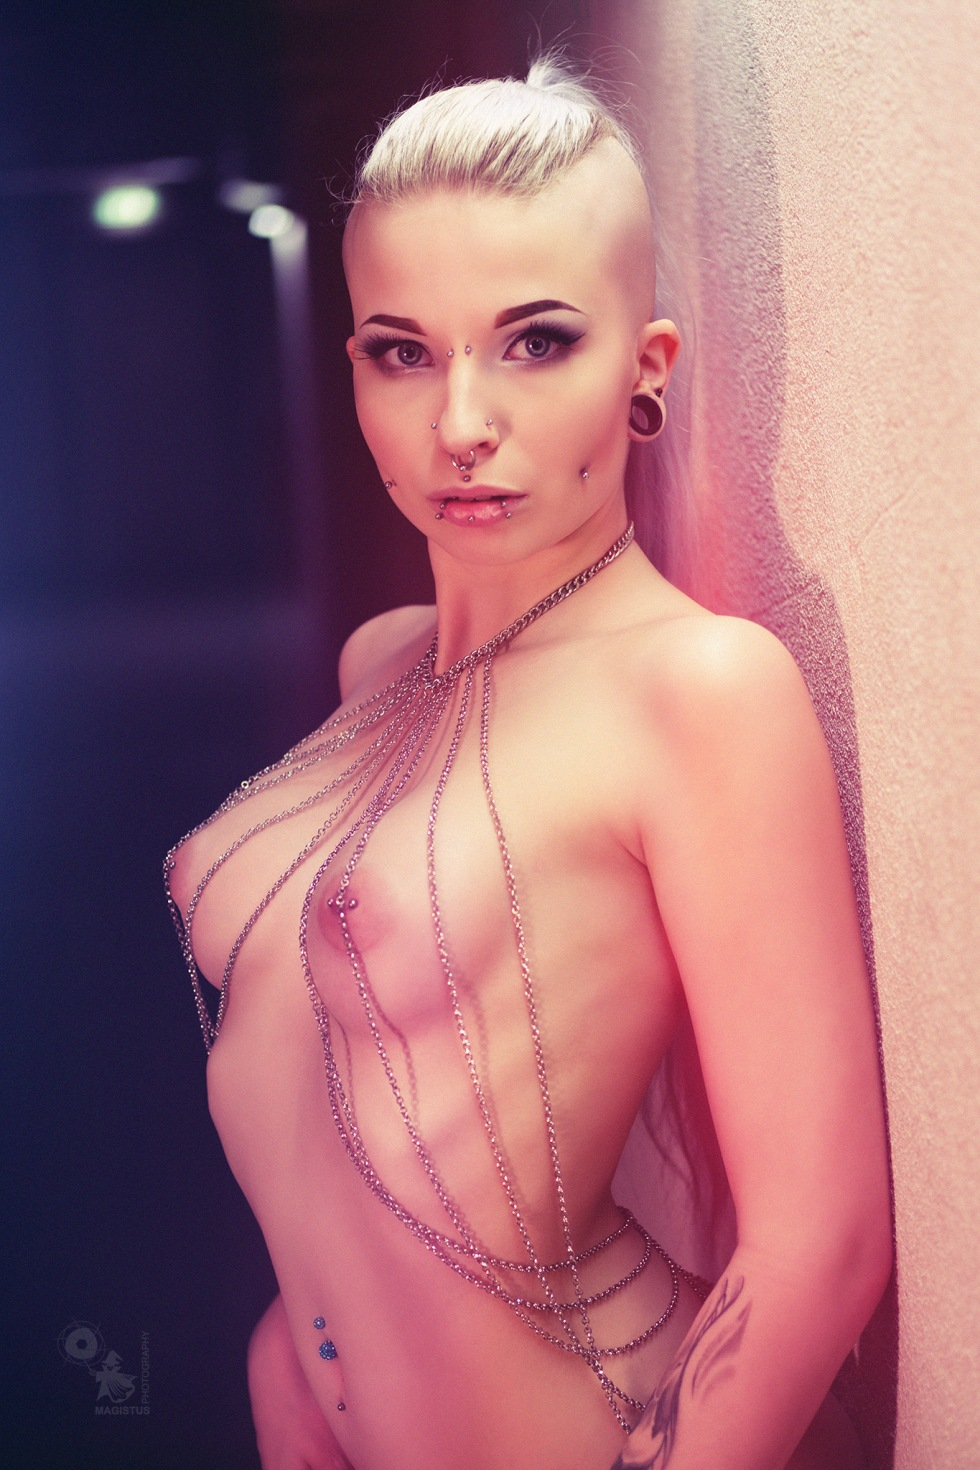 Lilith - super sexy and beautiful nude alternative model is posing naked in a dark place showing her pierced boobs